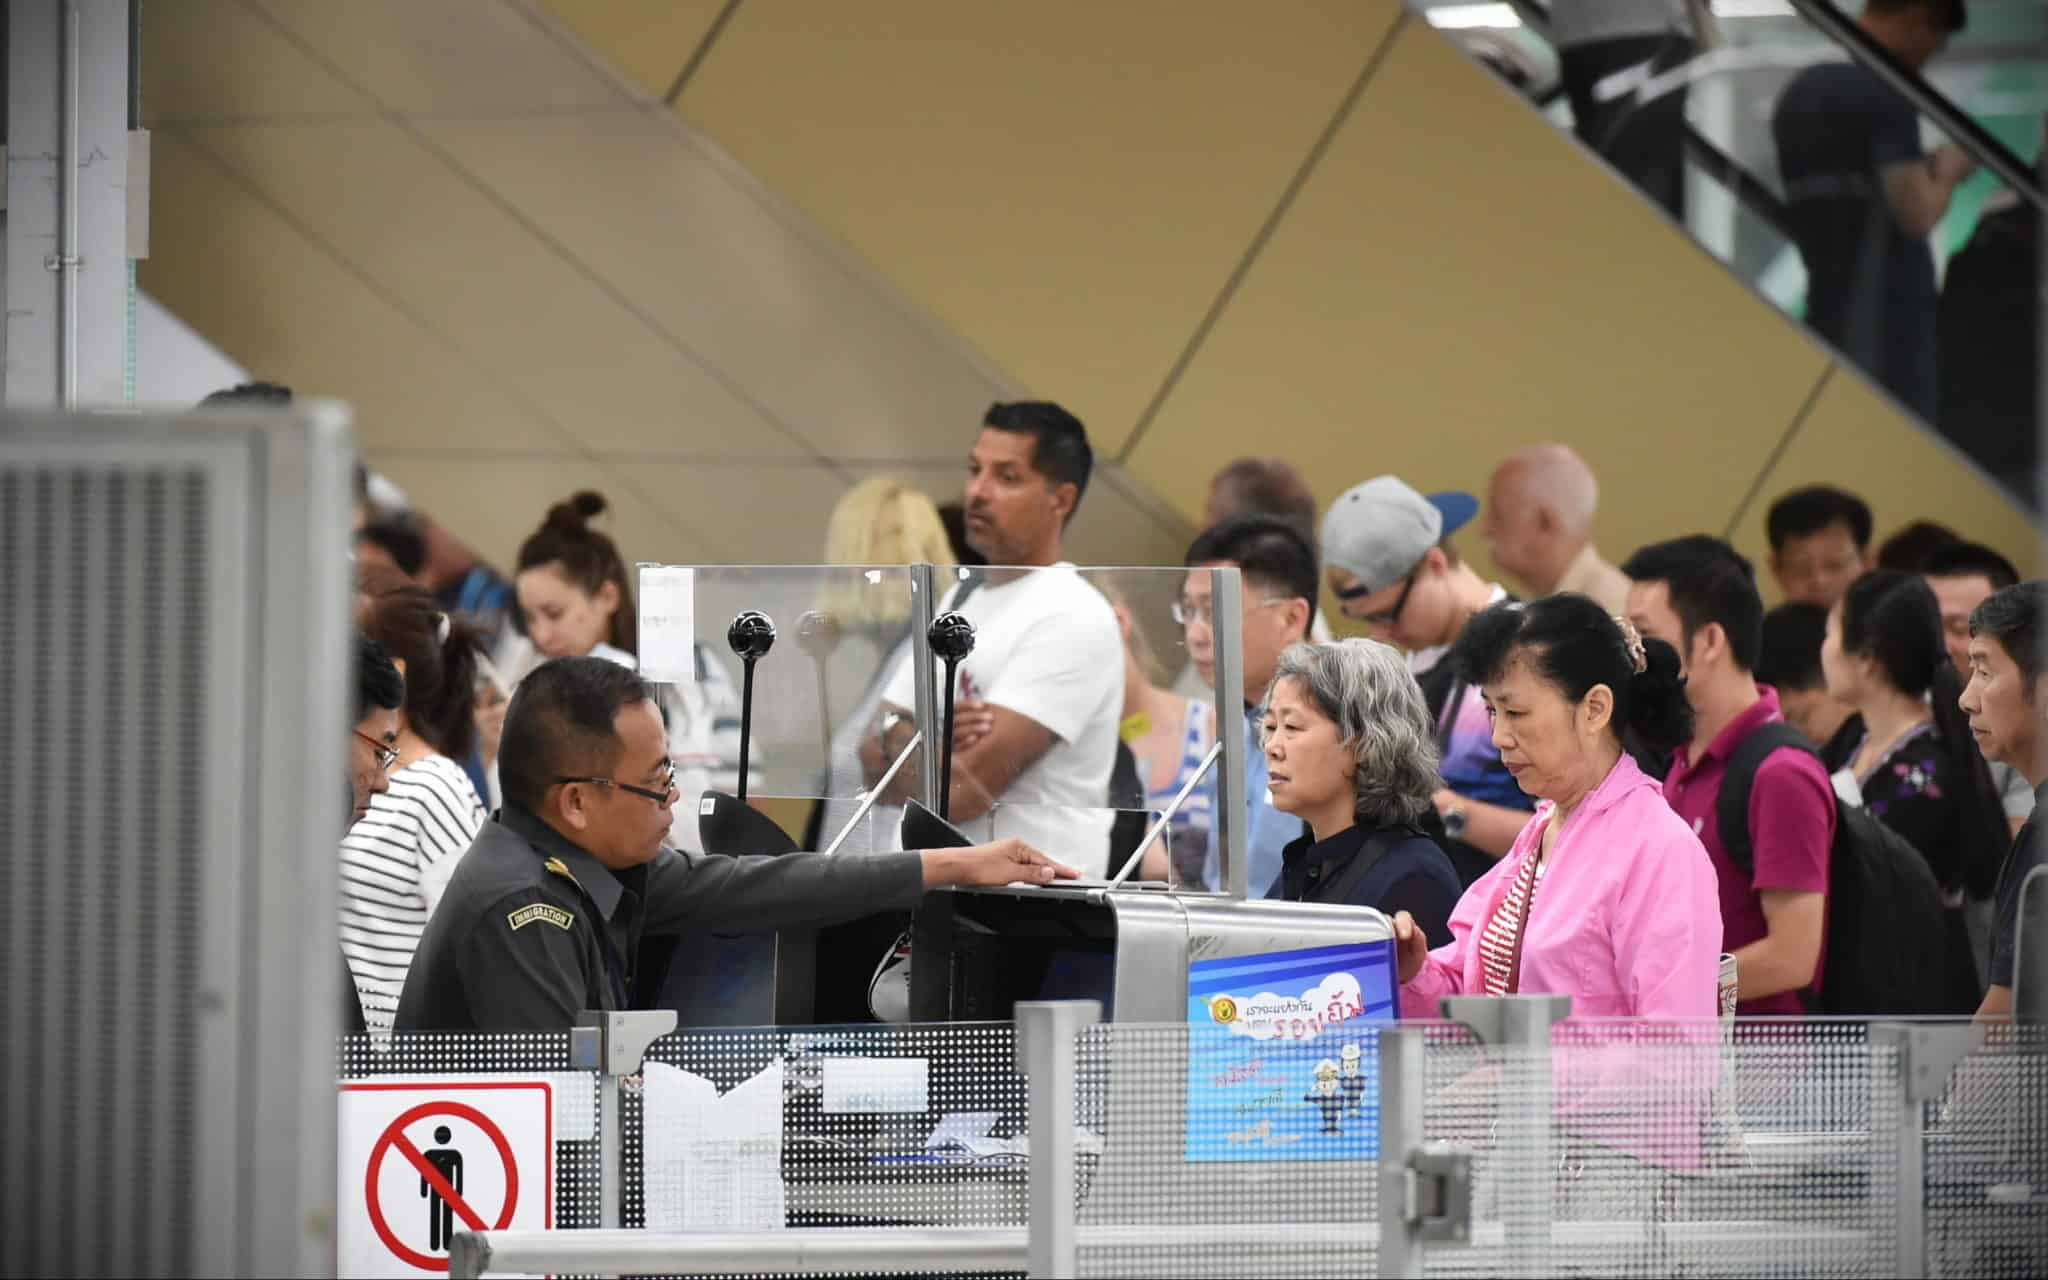 People queing at Thai immigration counter